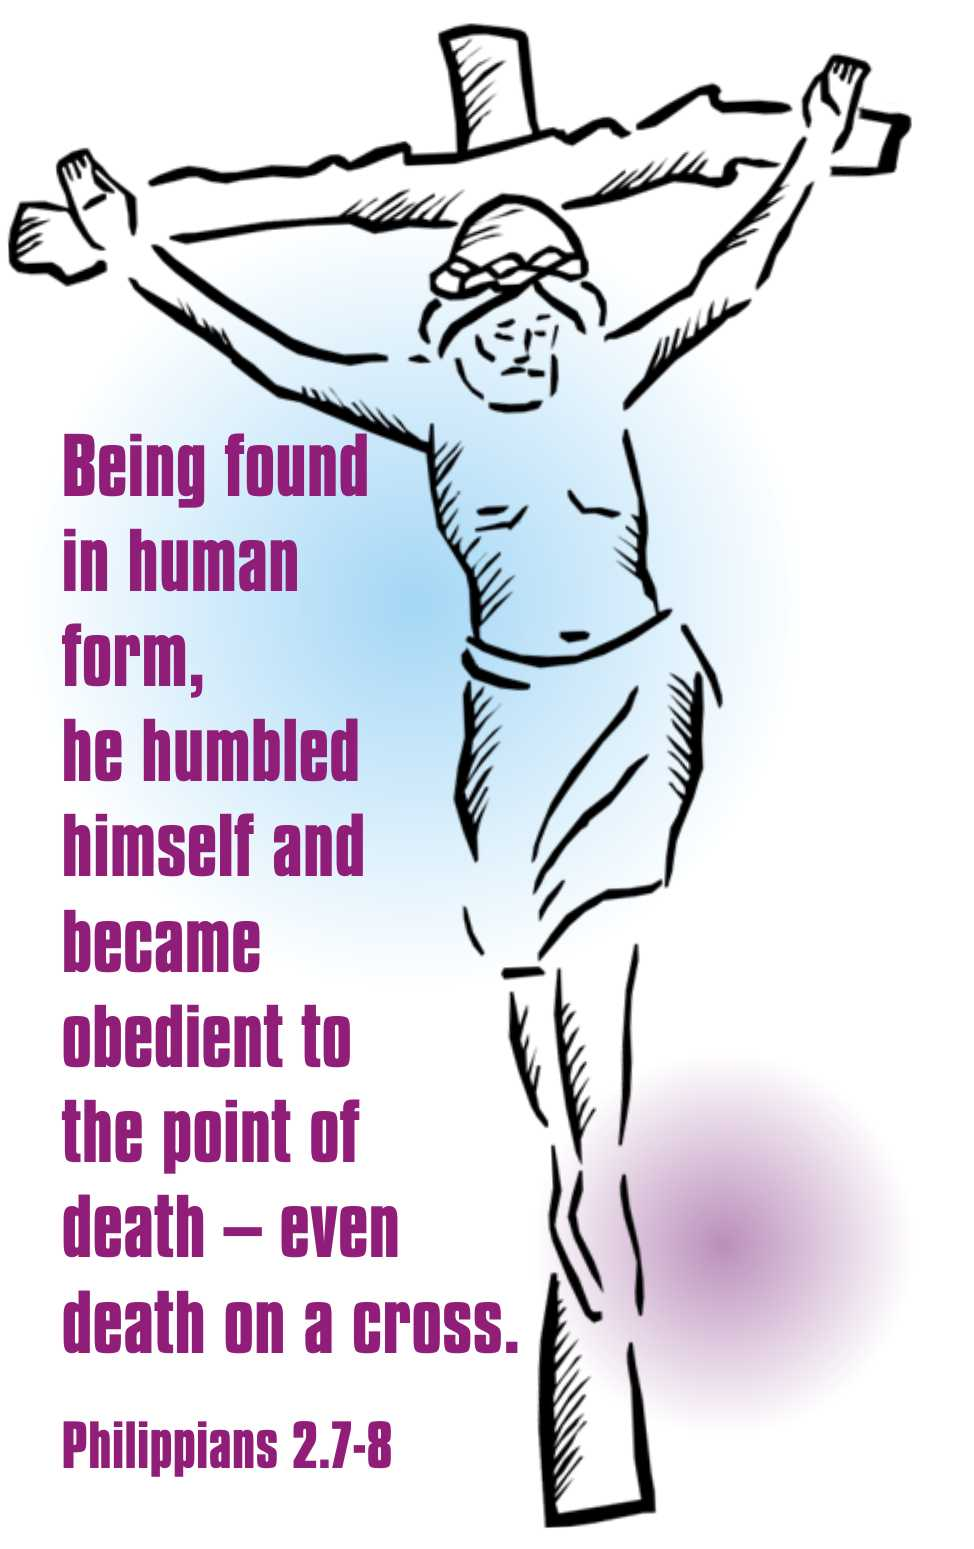 Free Ash Wednesday Clipart, Download Free Clip Art, Free Clip Art on.